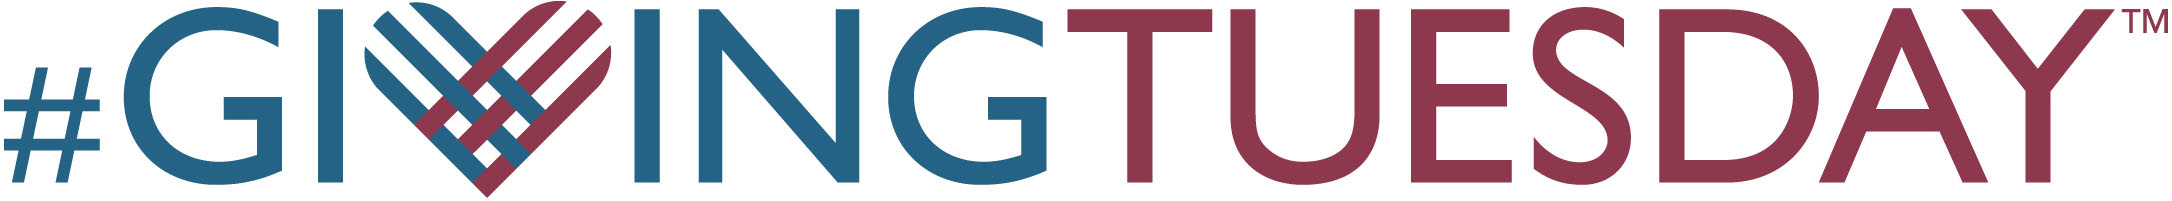 GivingTuesday_logo.jpg